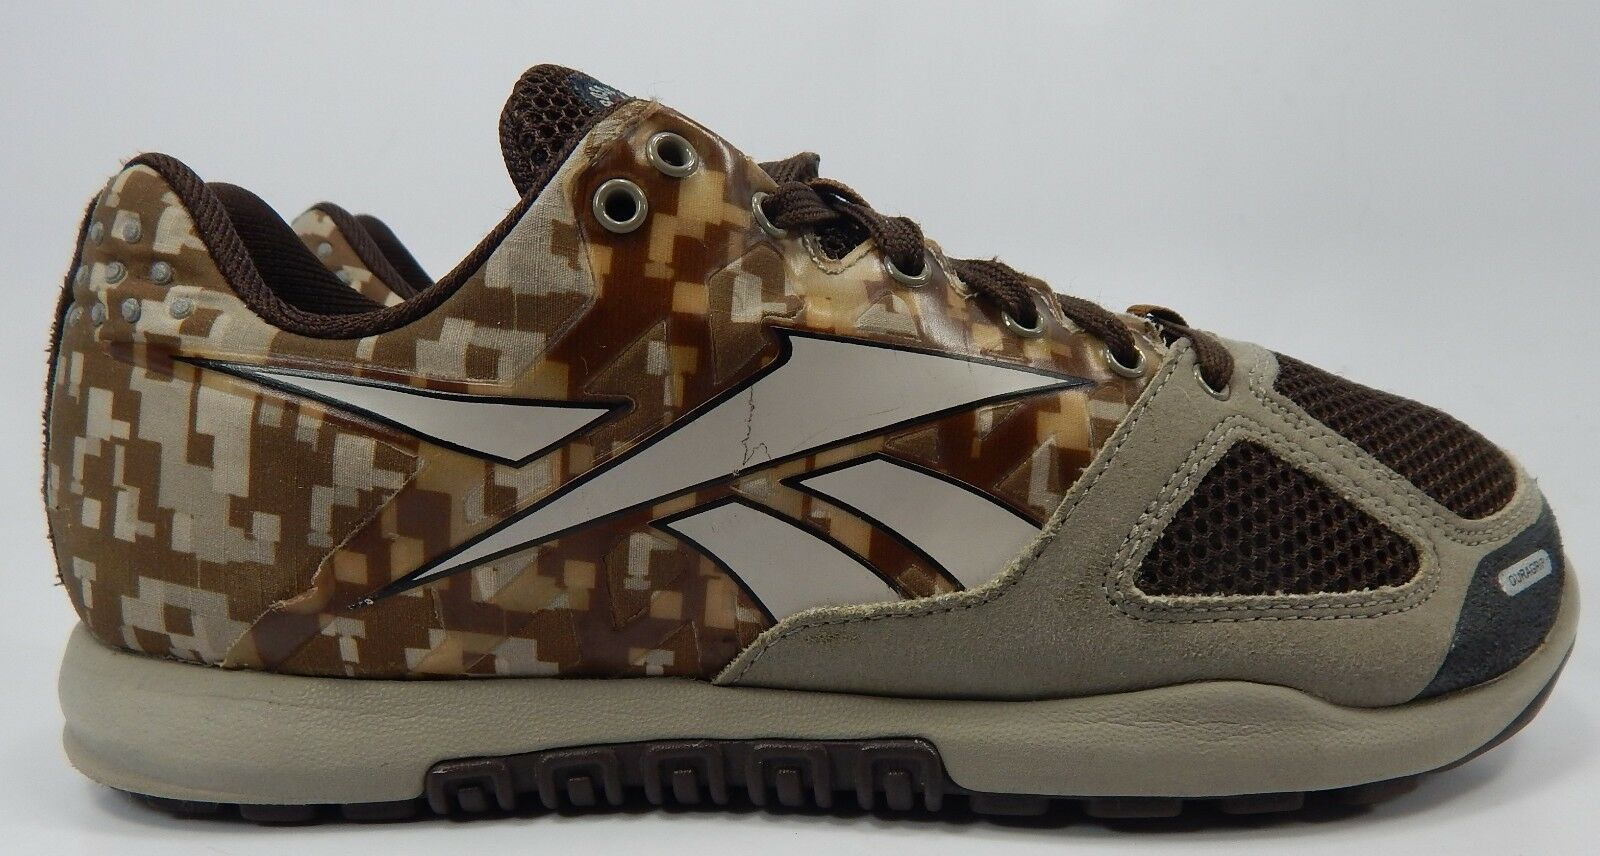 Reebok Crossfit Nano 2.0 Size US 7 M (B) Women's Running shoes Brown